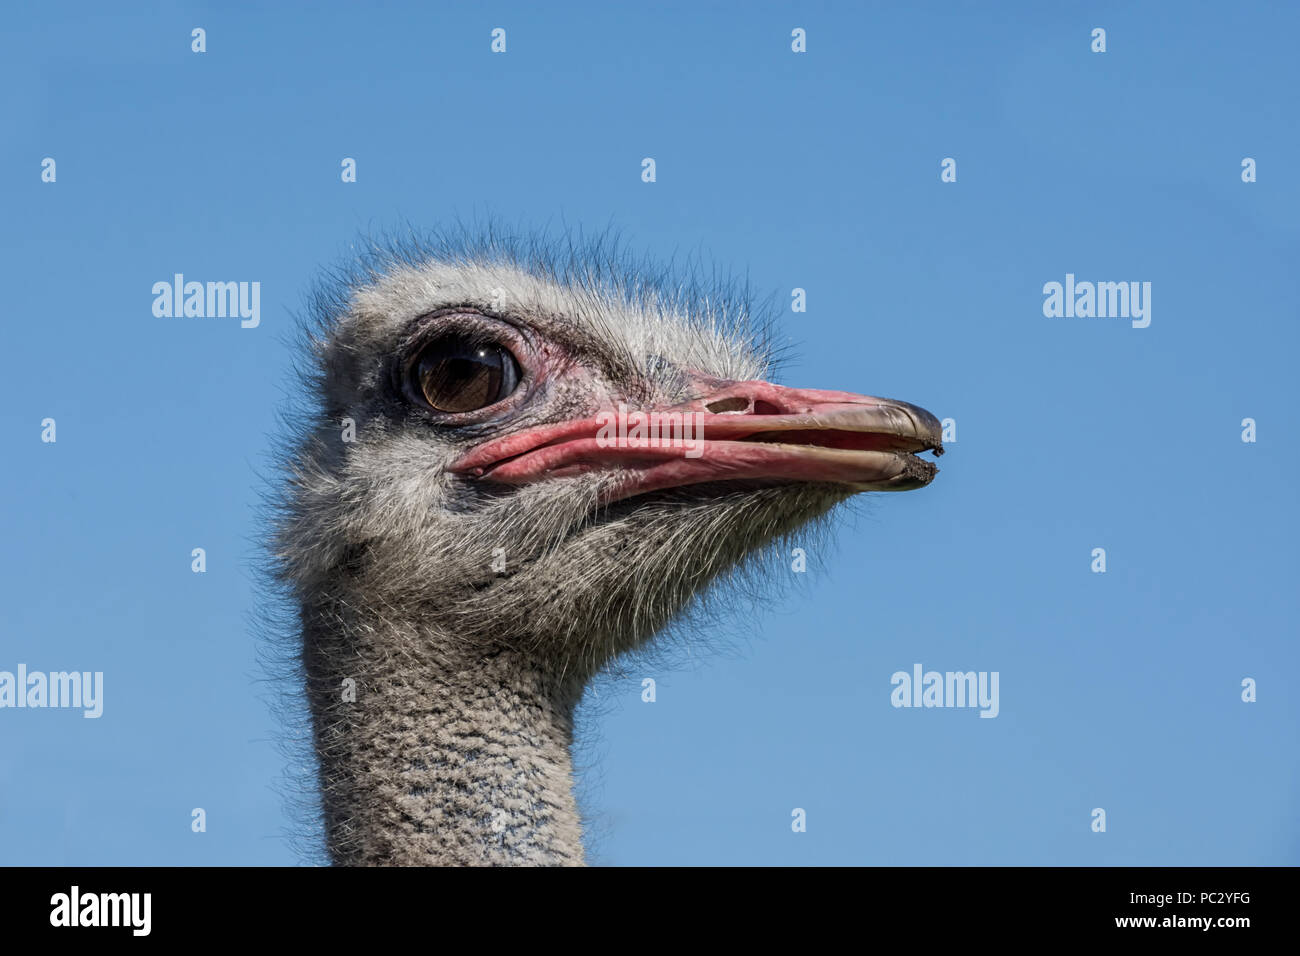 A closeup portrait of an Ostrich head - Stock Image